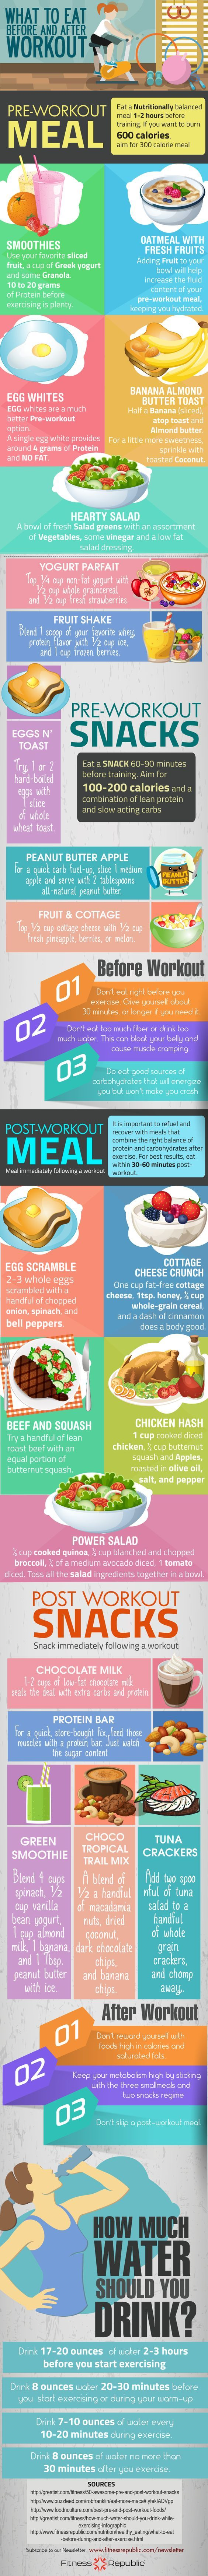 Use this helpful chart for pre and post workout meals and snacks and helpful tips.